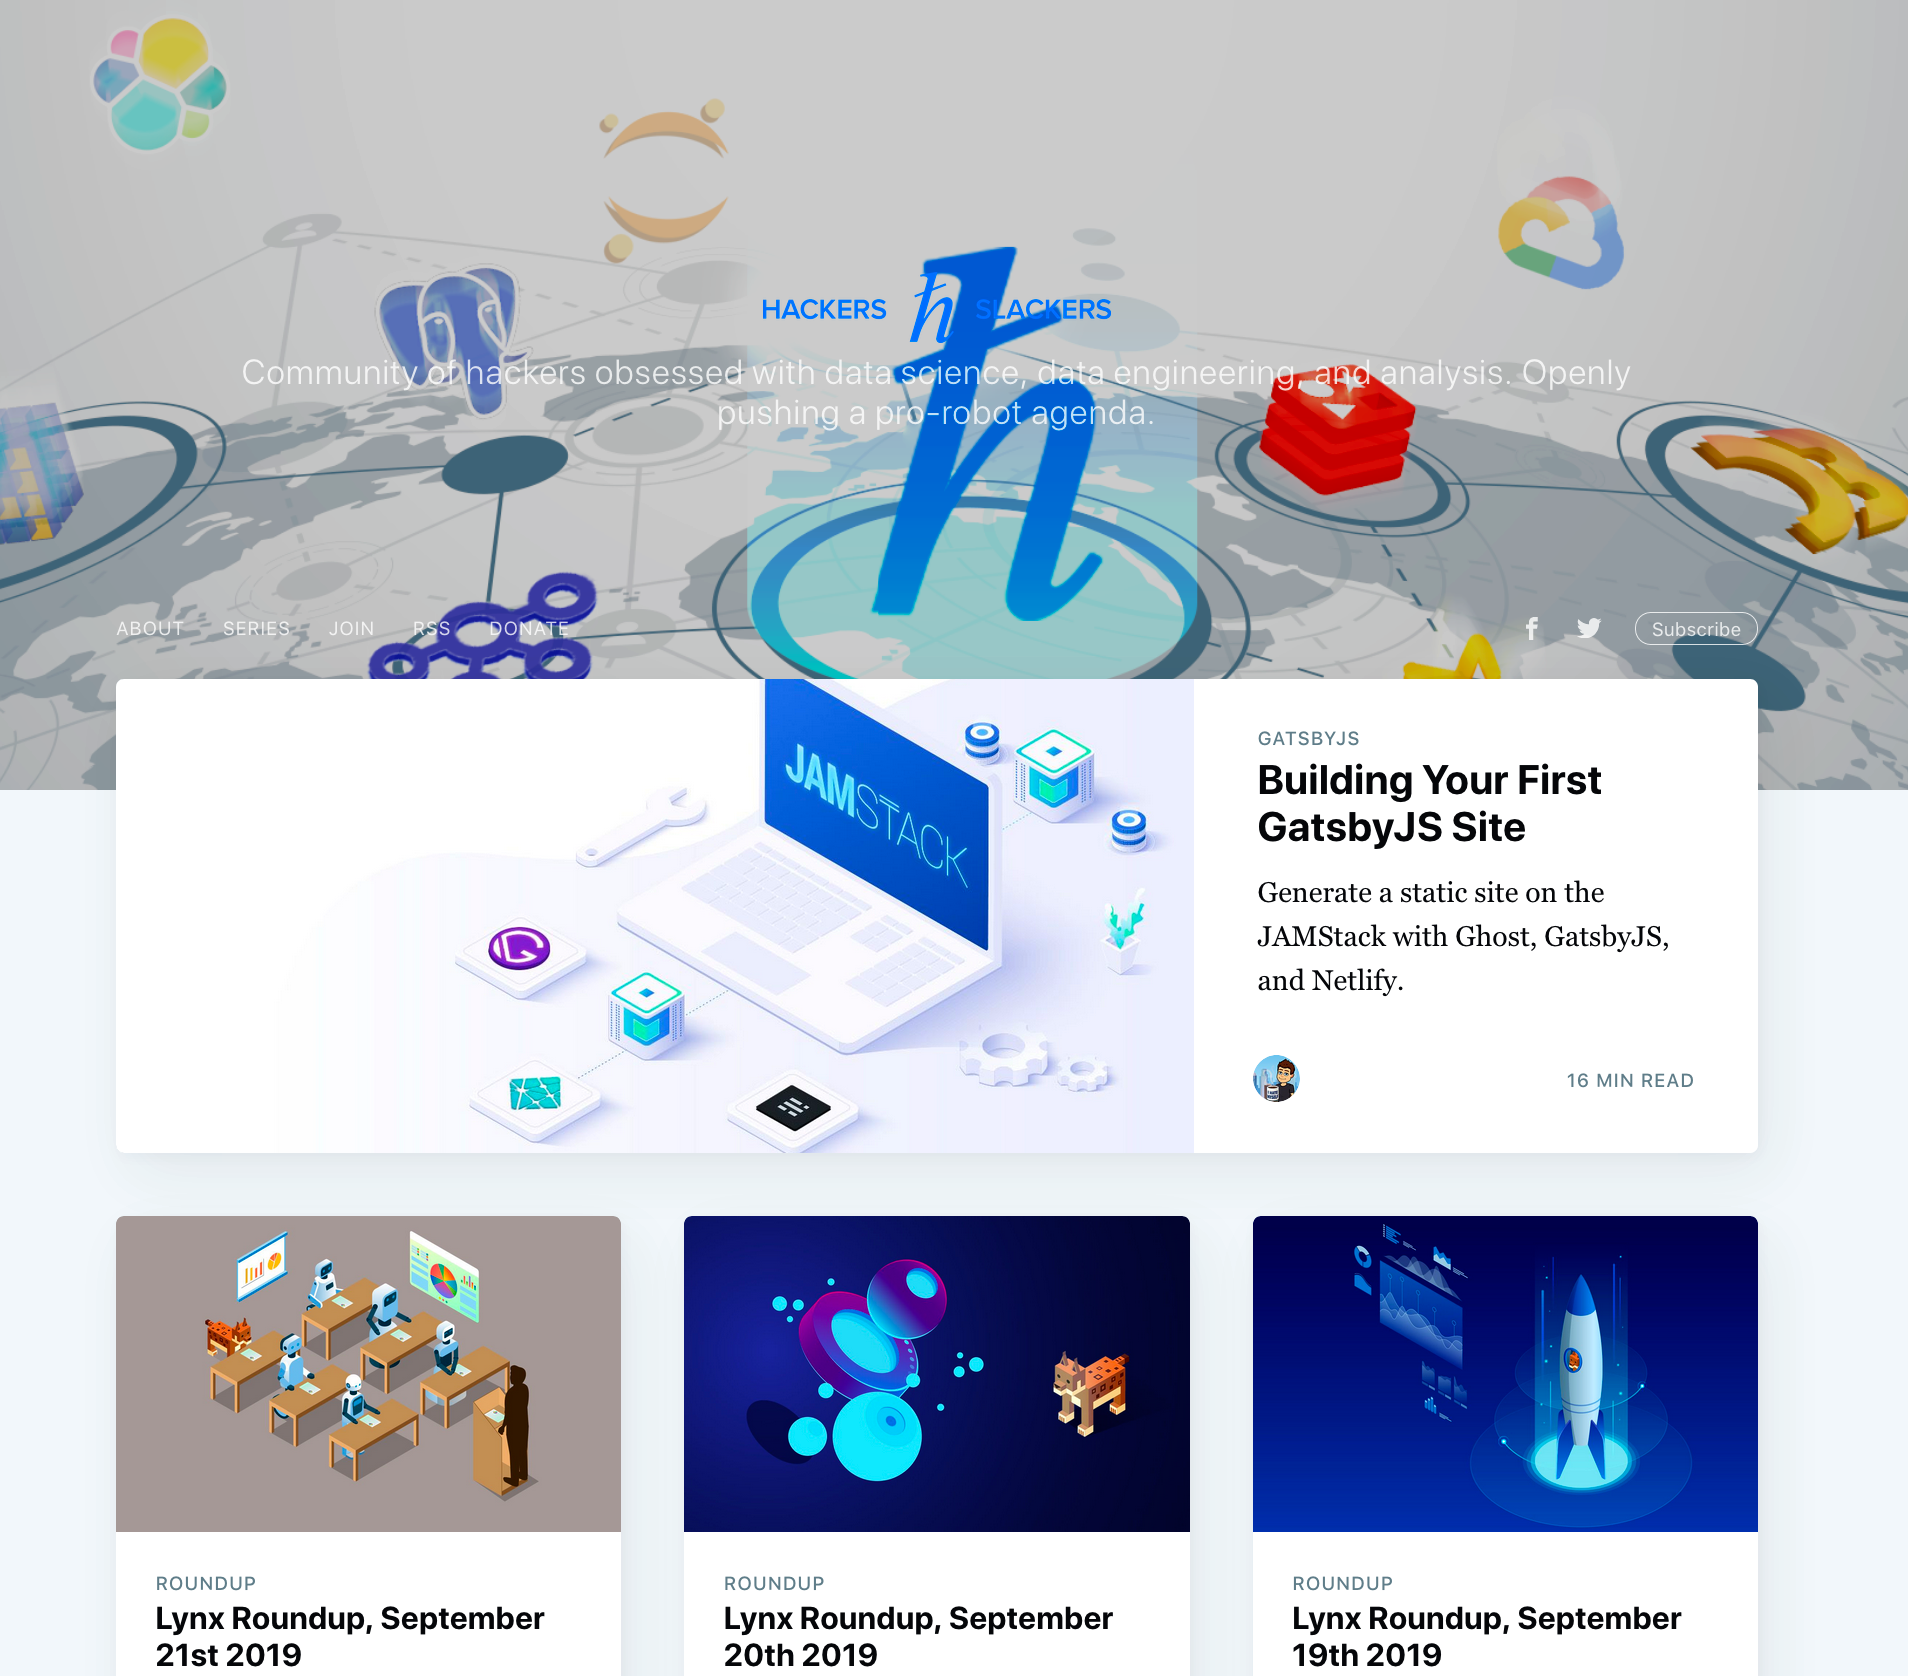 gatsby-starter-ghost site sourcing Hackers and Slackers content